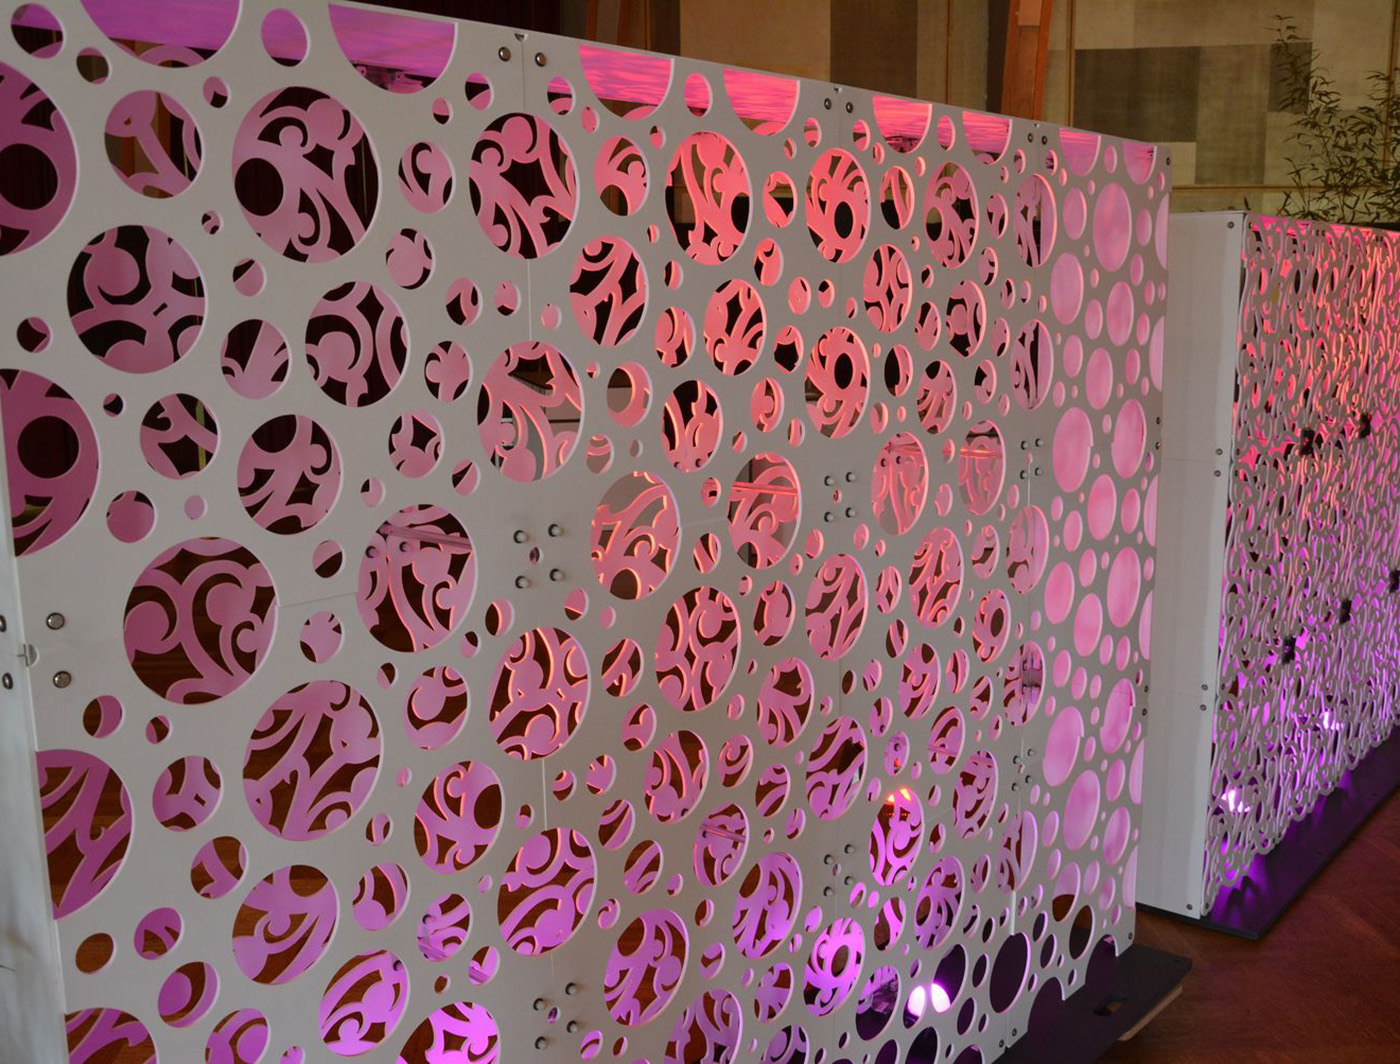 Fizz and pippa fuse together for a creative superwall